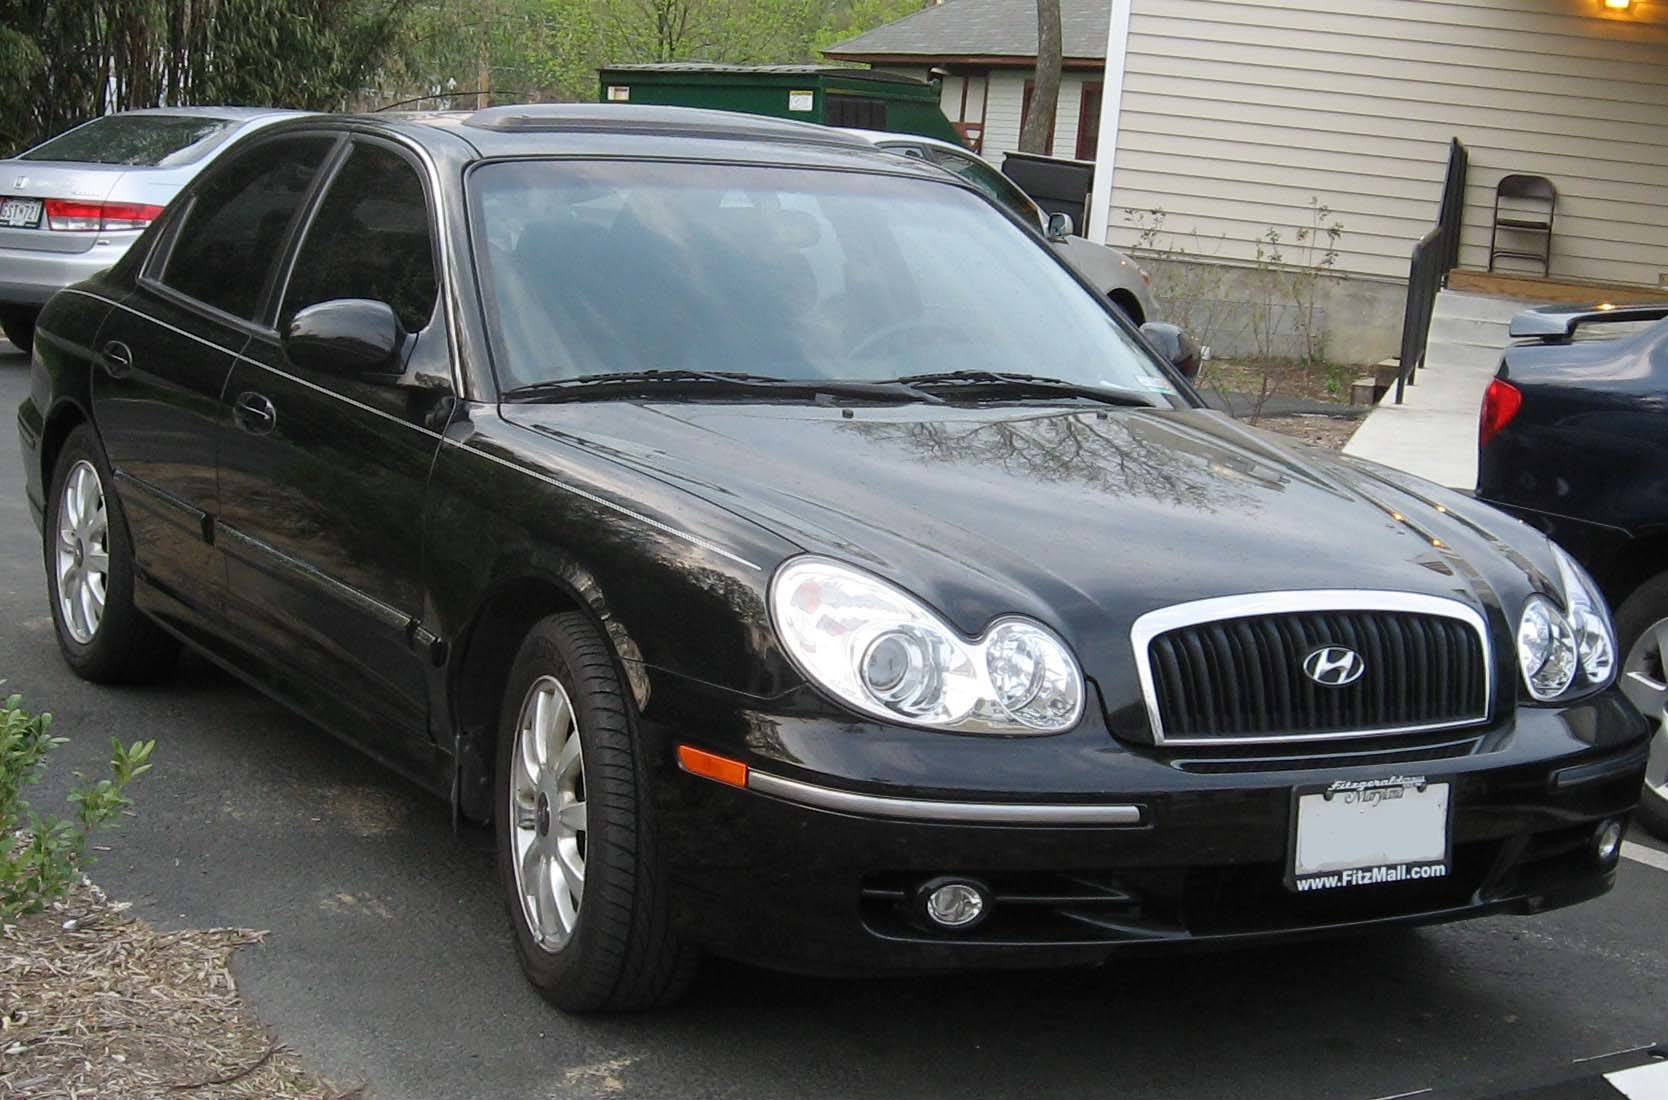 2003 hyundai sonata base sedan 2 7l v6 auto. Black Bedroom Furniture Sets. Home Design Ideas